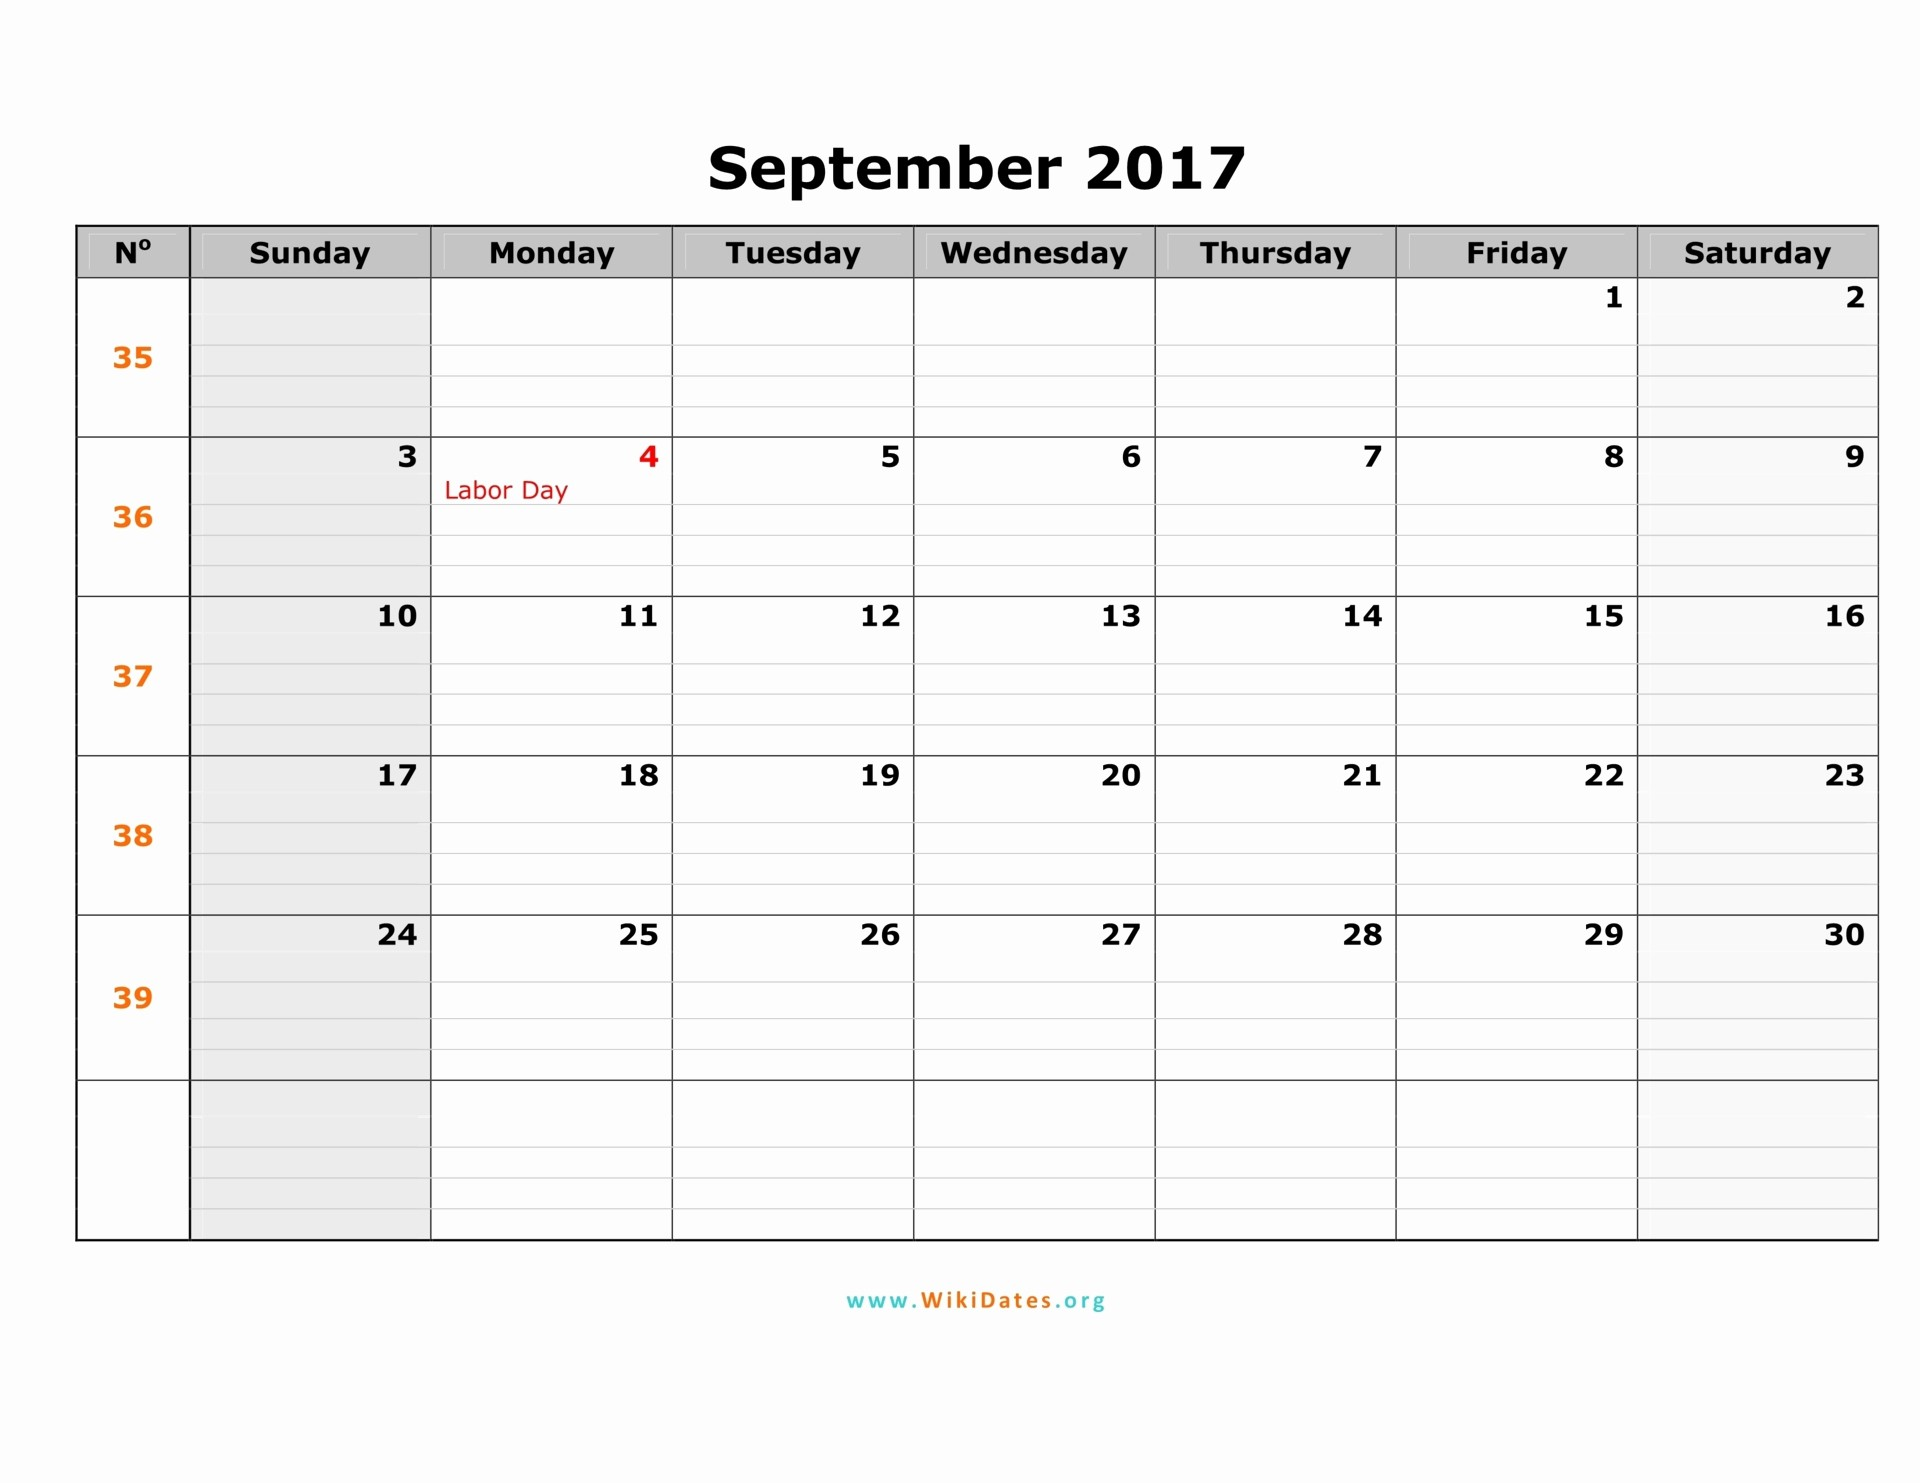 September 2017 Printable Calendar Word Awesome September 2017 Calendar